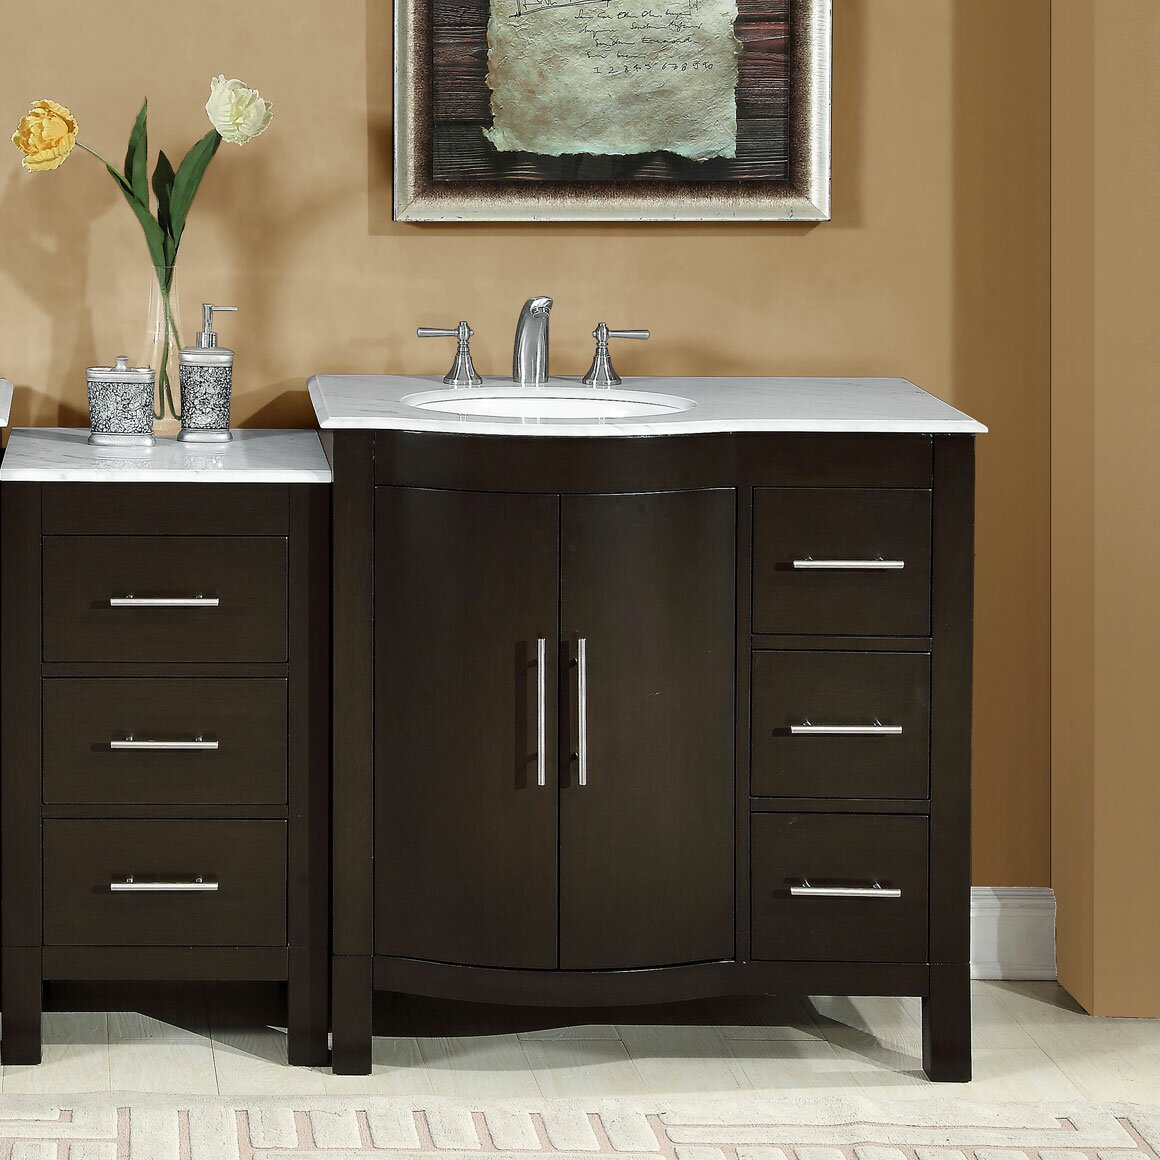 Silkroad Exclusive 53 5 Single Sink Lavatory Cabinet Modular Bathroom Vanity Set Reviews